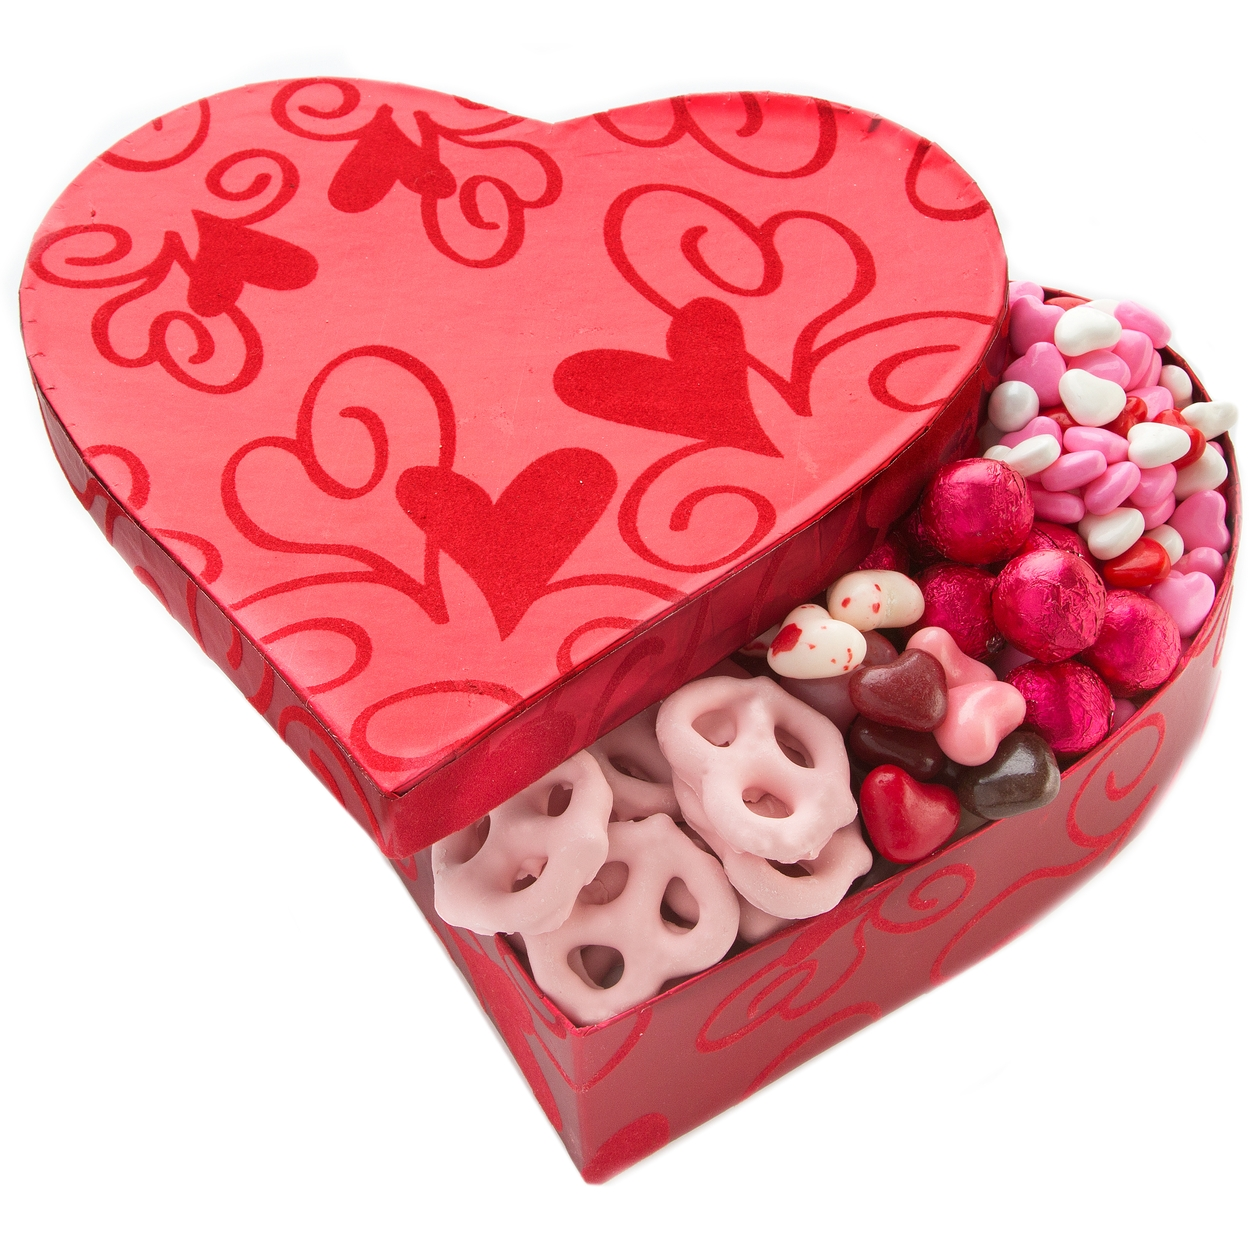 Valentine's Day Chocolates, Cookies, Baskets & Gifts • Oh! Nuts®